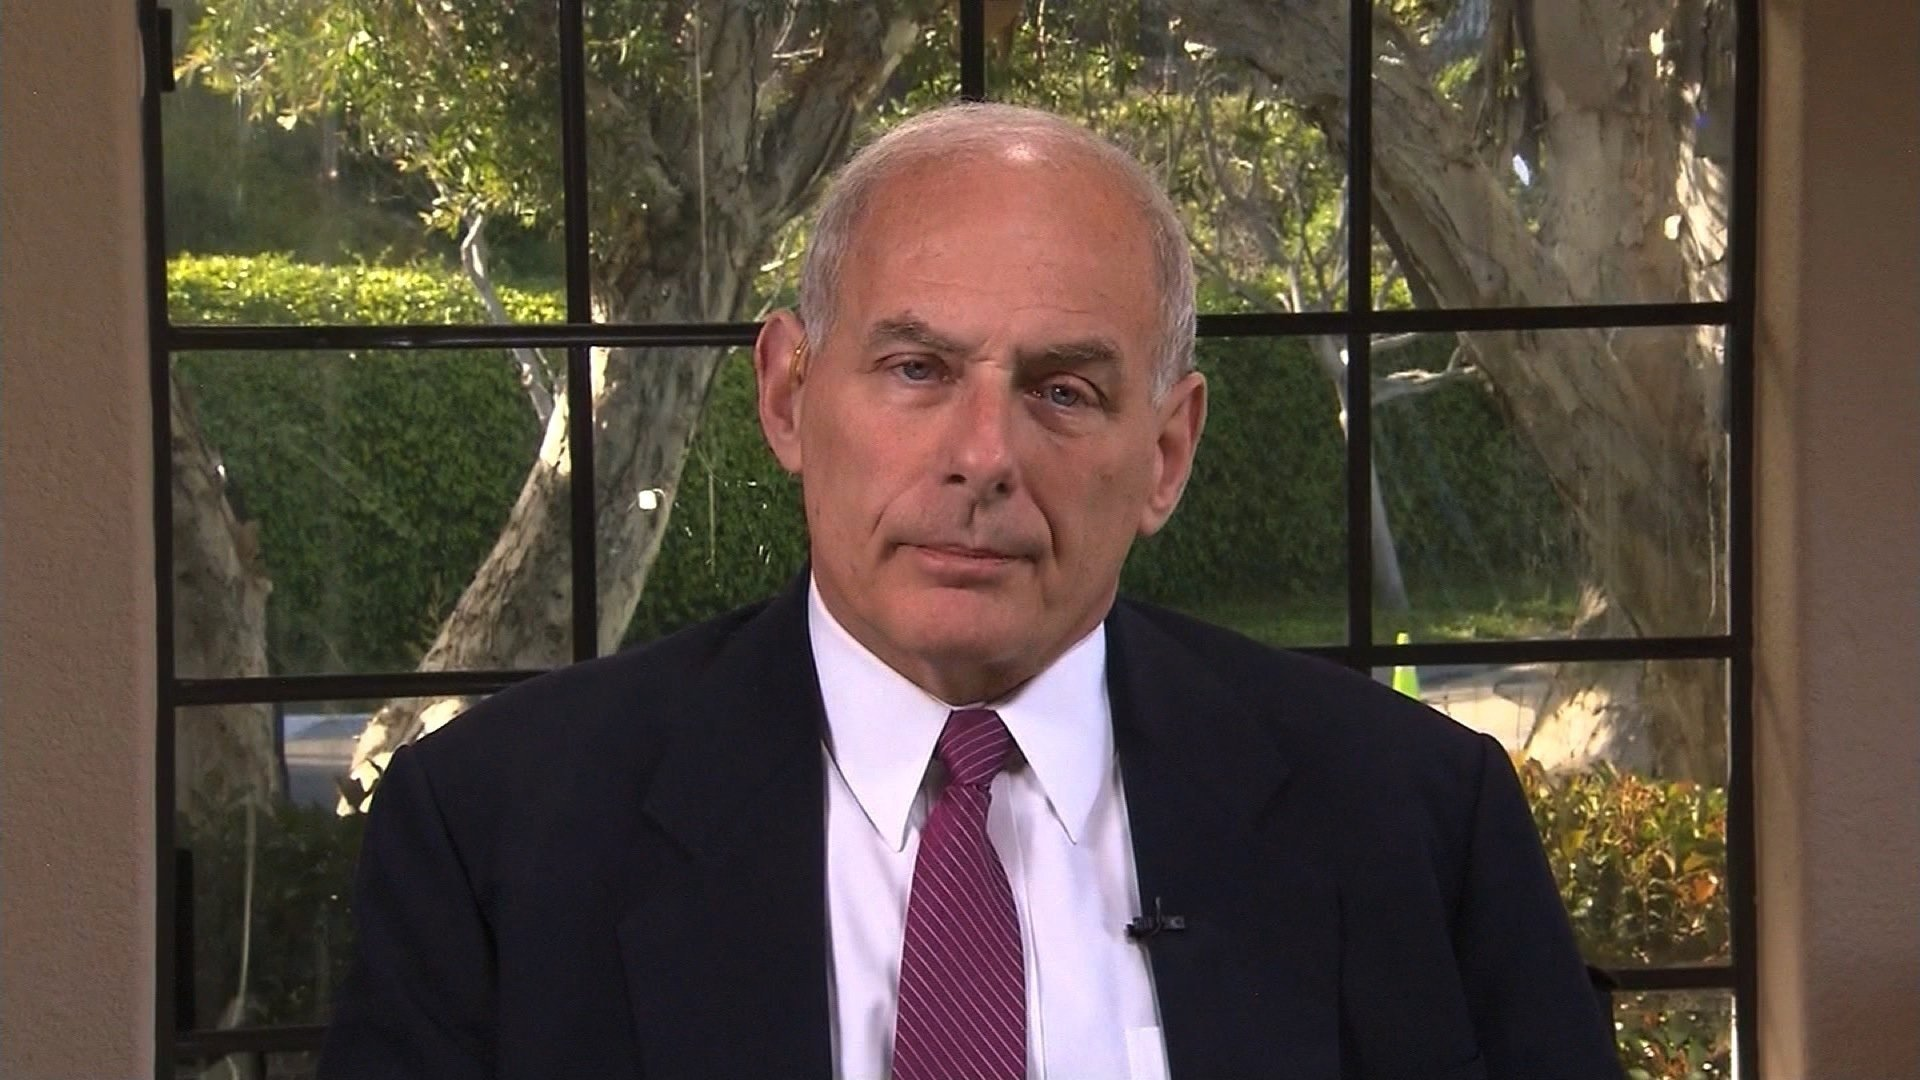 Kelly: Vast majority of undocumented immigrants 'don't have skills'